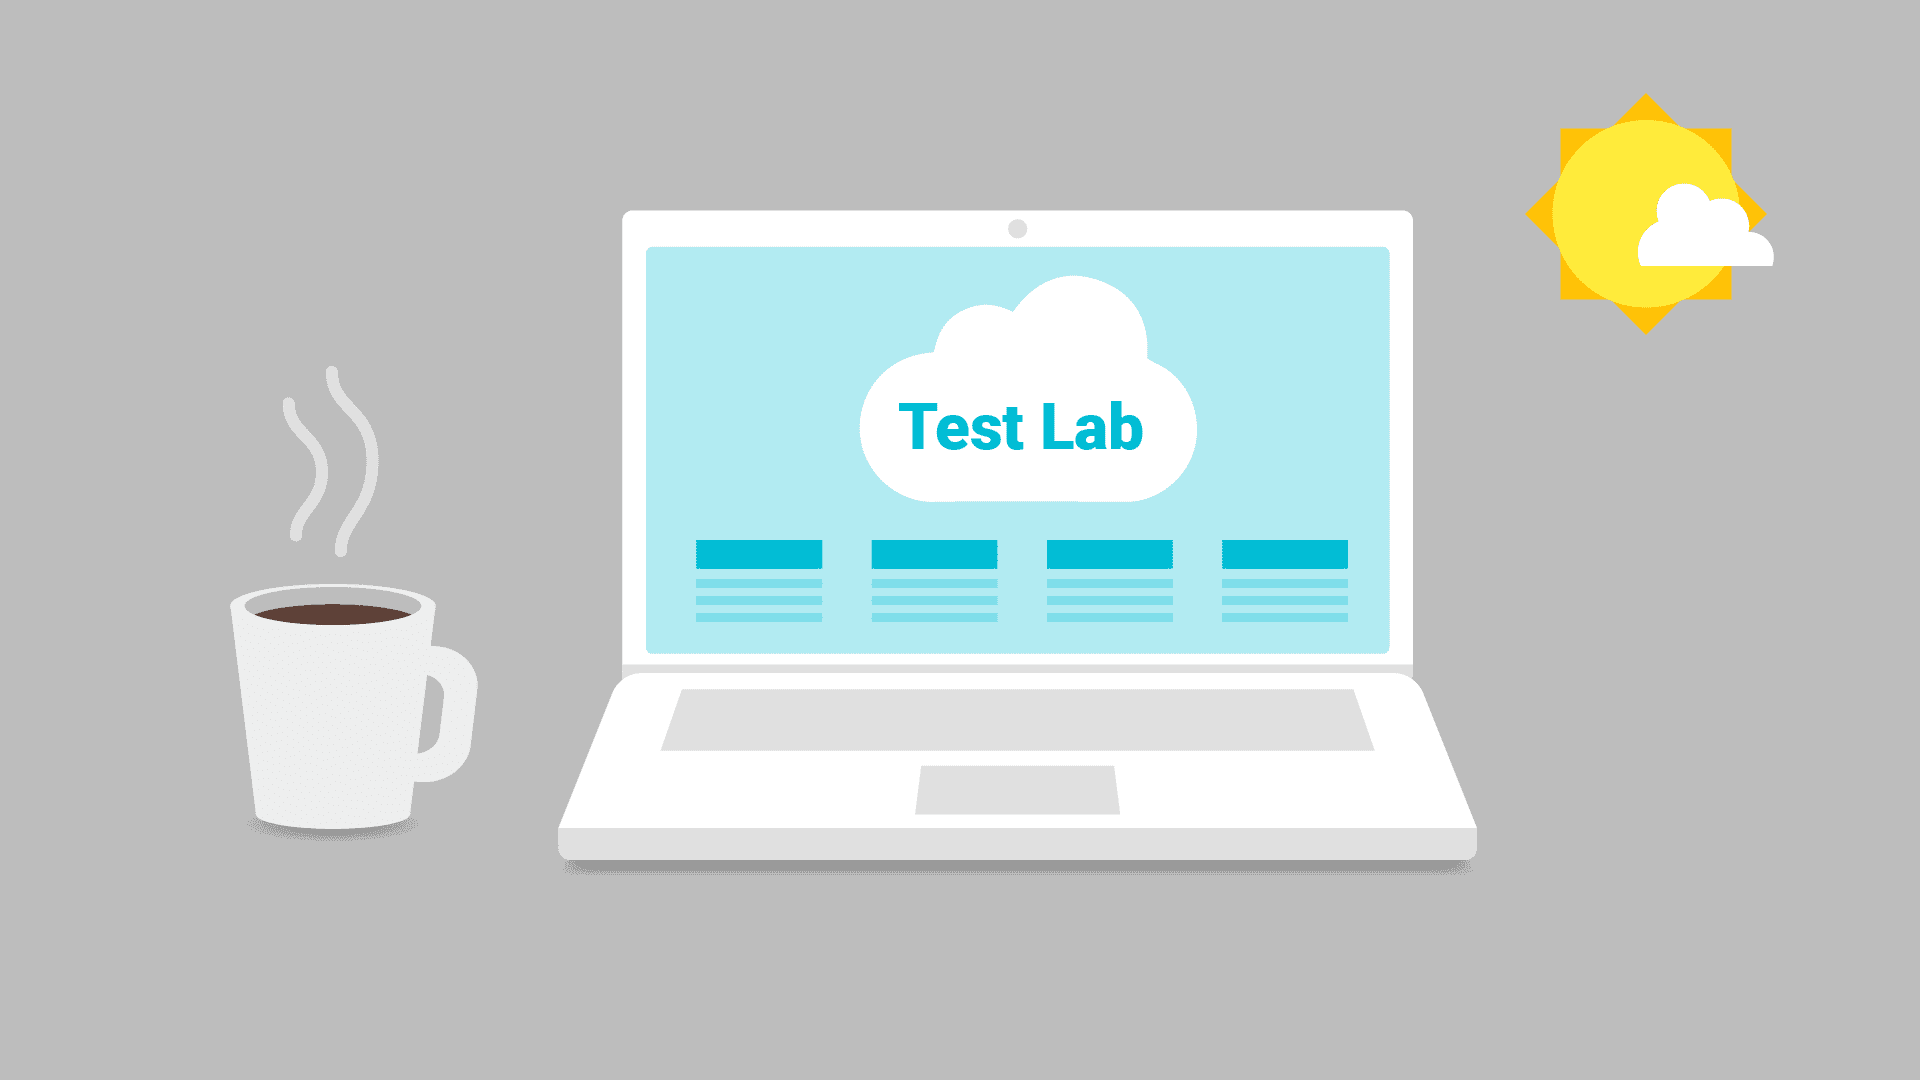 Laptop with Test Lab on screen